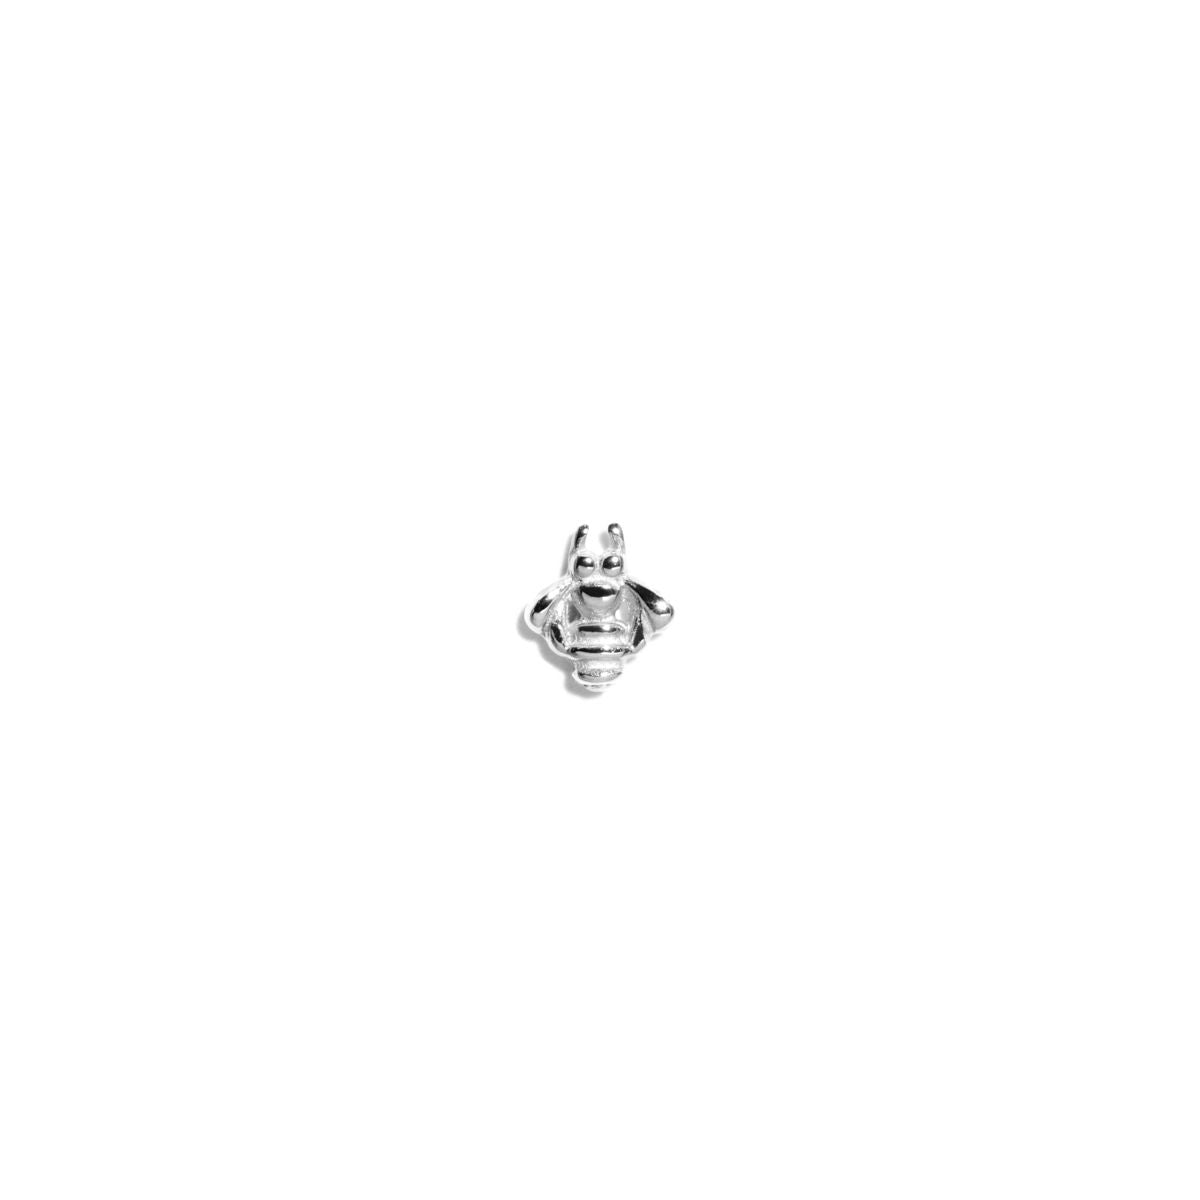 The Single Silver Tiny Bumble Bee Stud Earring